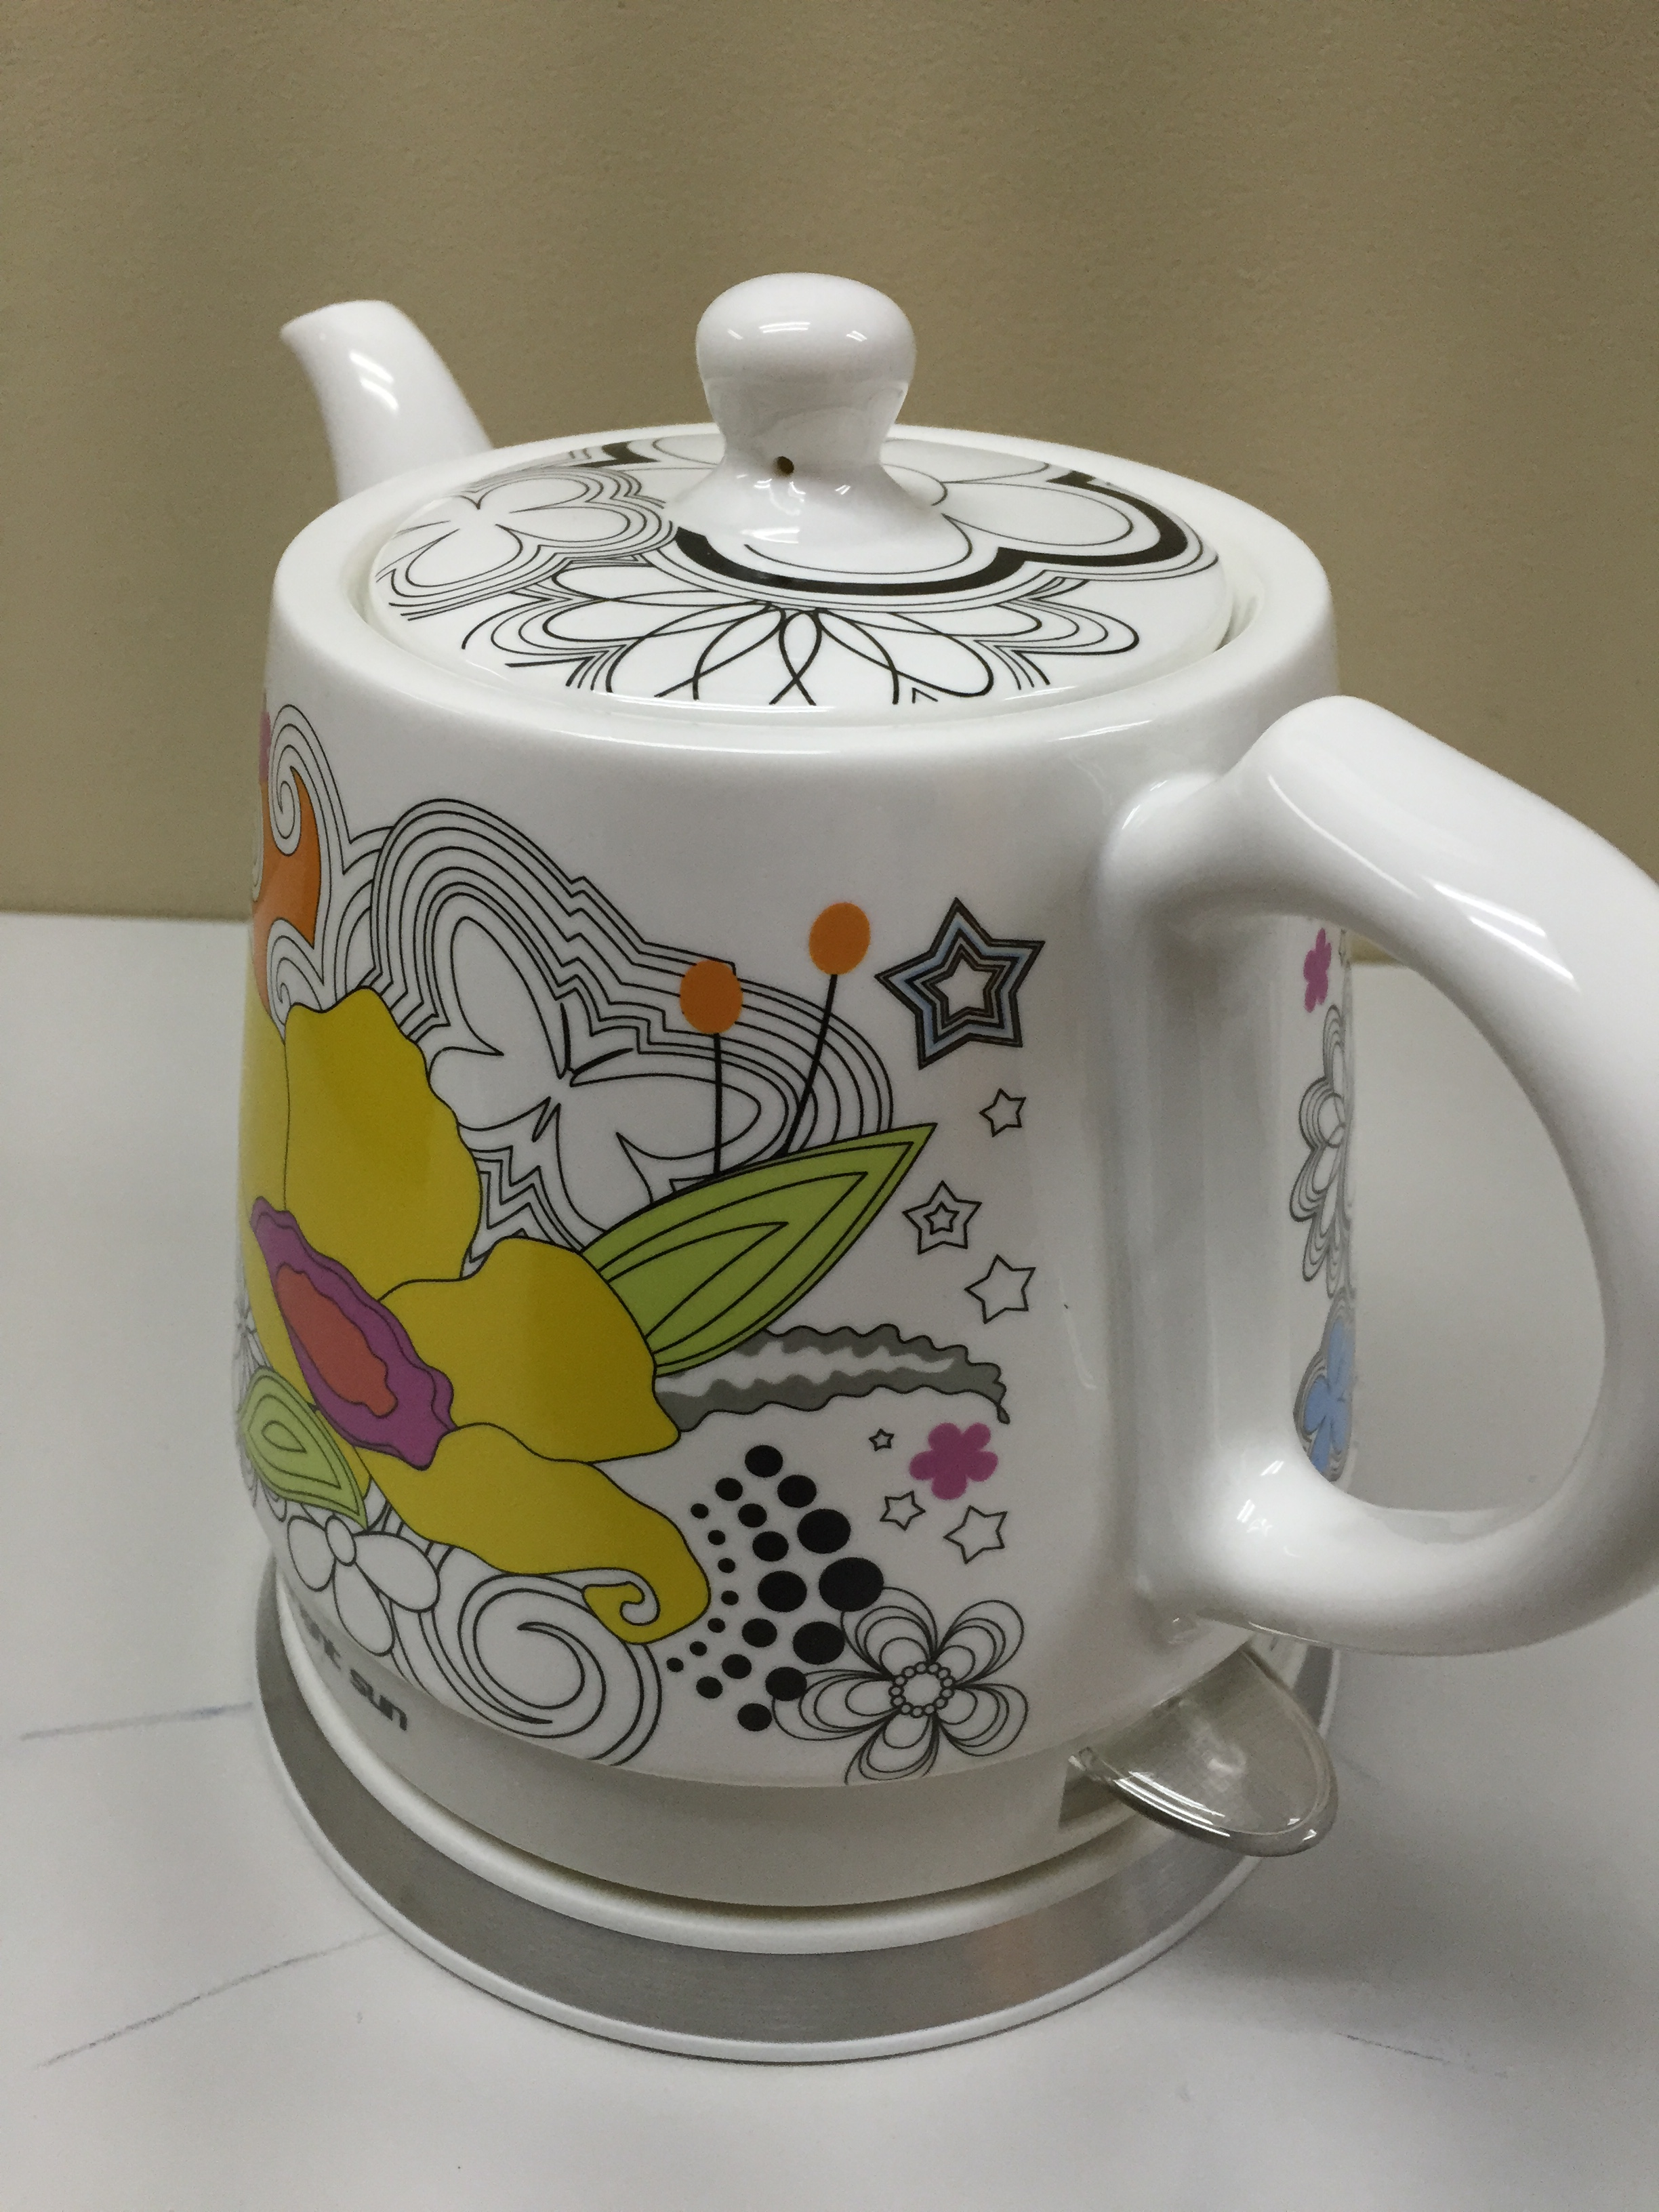 Teapot Ceramic Electric Kettle Warm Plate, Kitchen Water